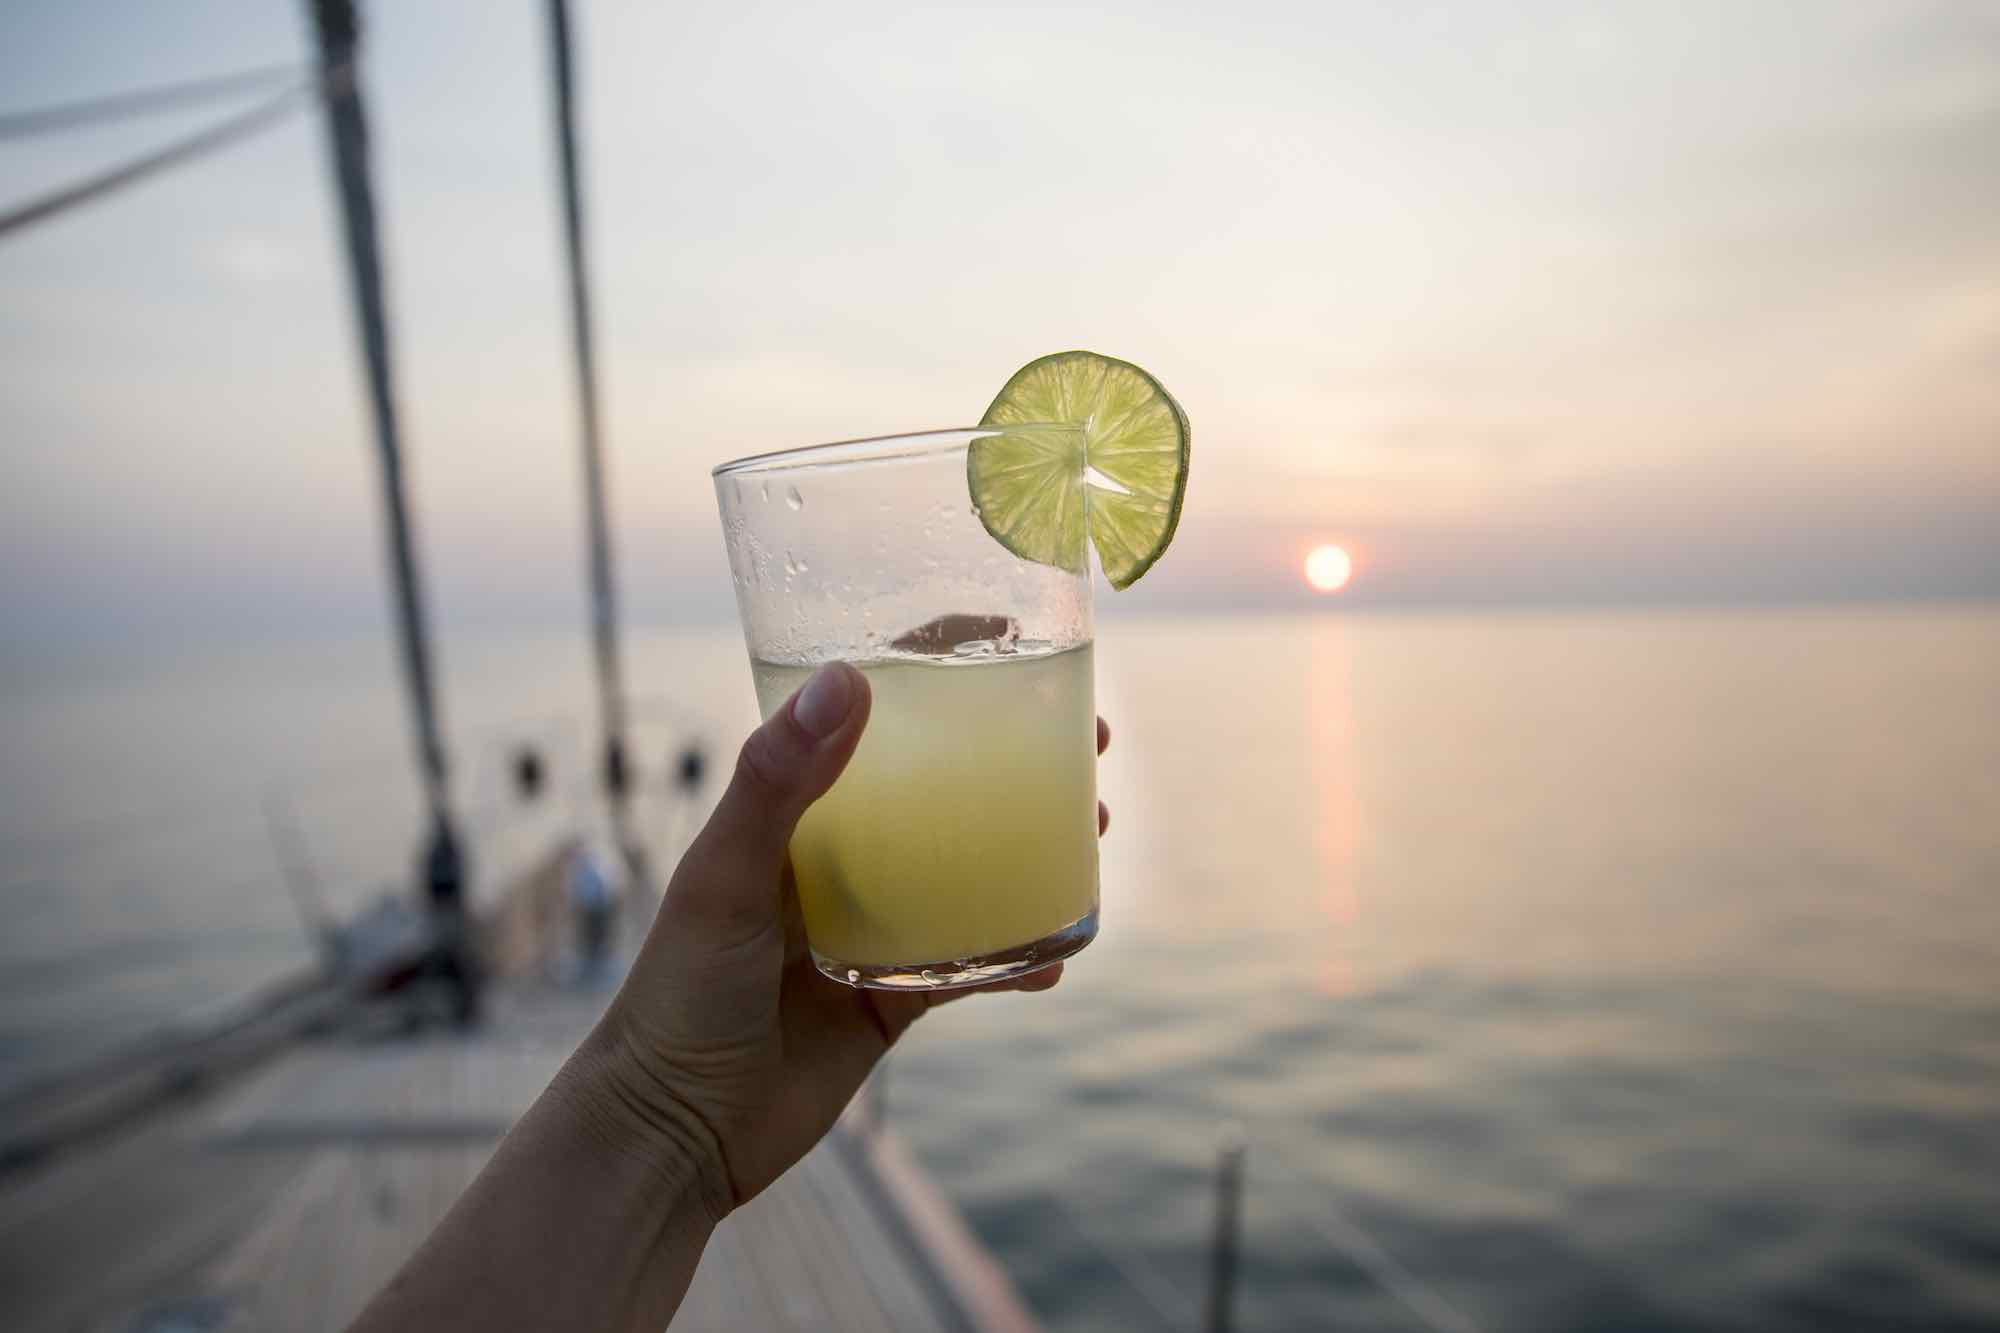 Aphrodite_have a fresh lemon drink as sun setting down boat trip in Thailand_XS.jpeg